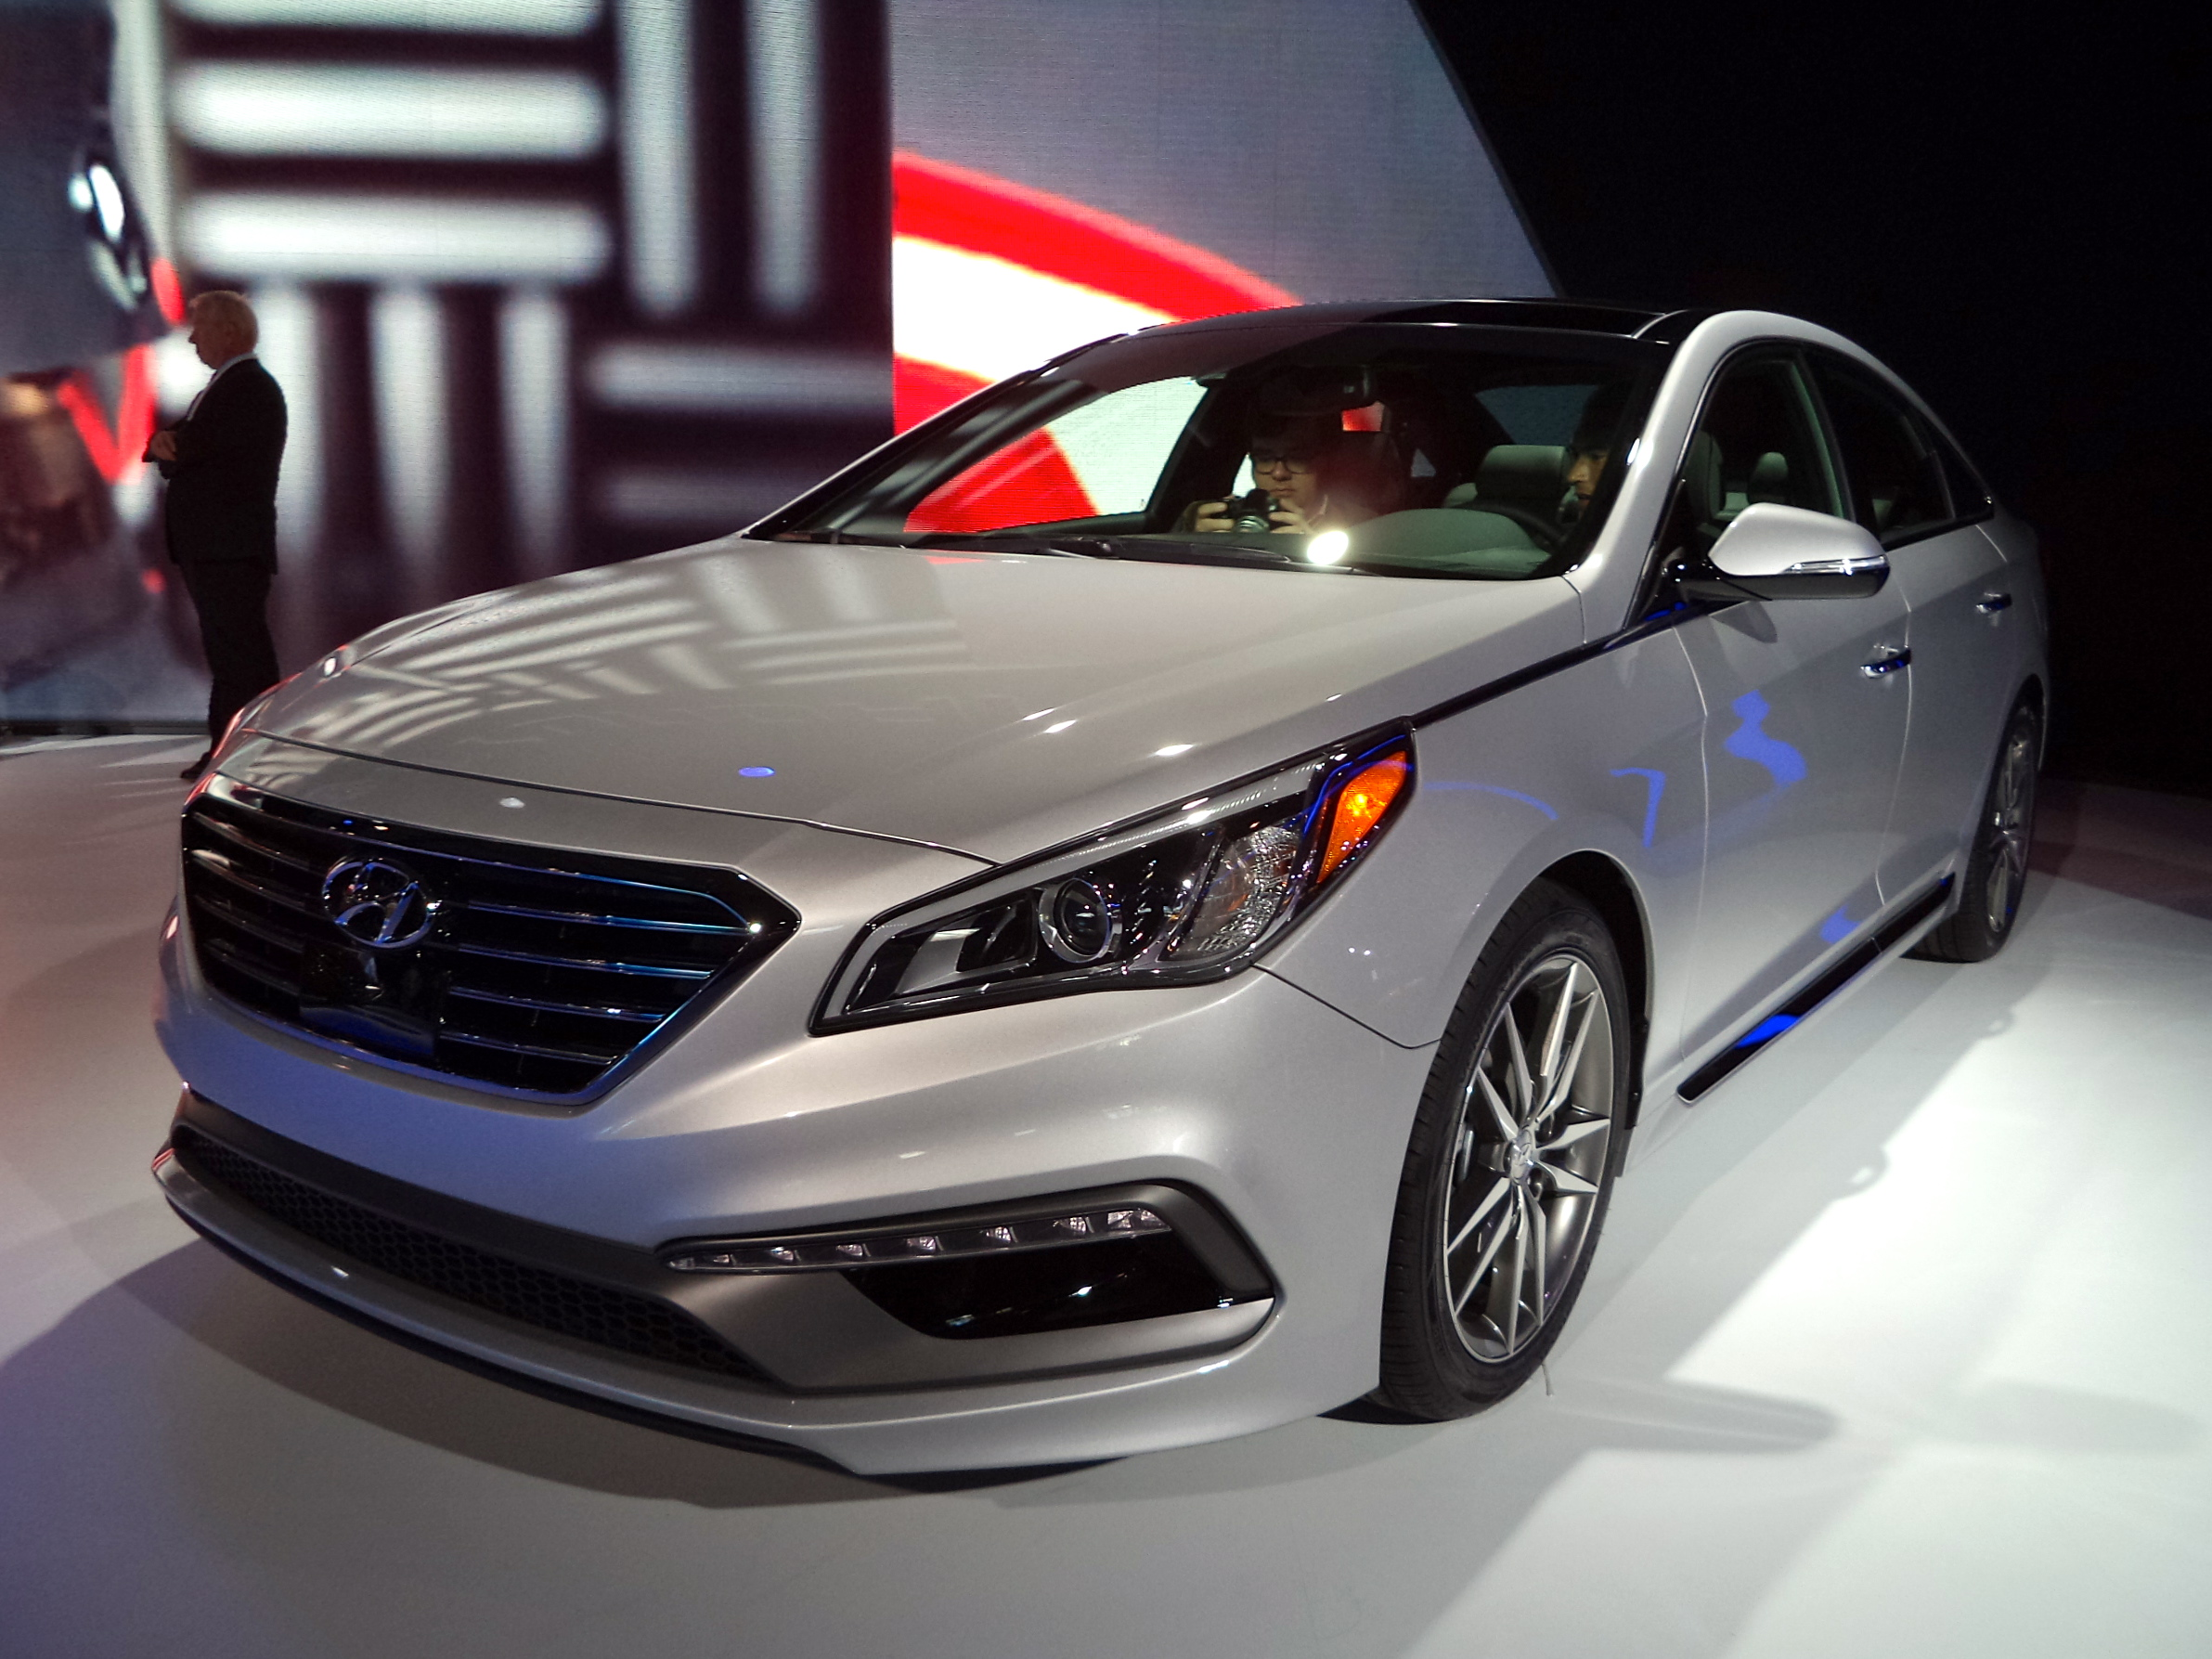 in exemplify trims engines transmissions hyundai alabama automotive produced to diverse nine of marketplace loyalty rhythms sonata offers needs price the three brand